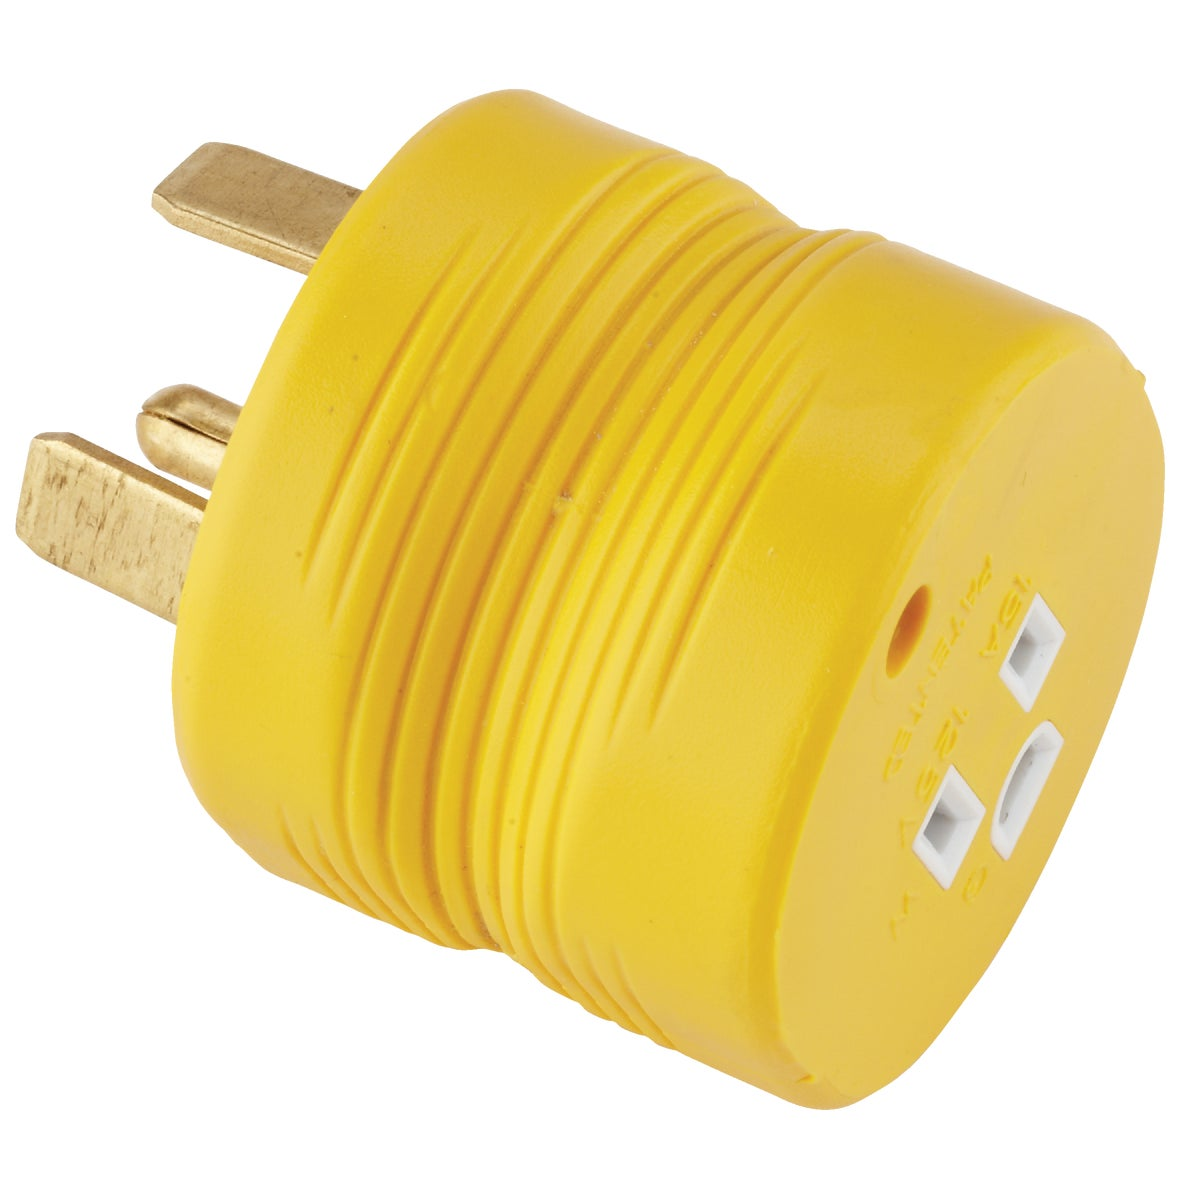 30M-15F ELECTRIC ADAPTER